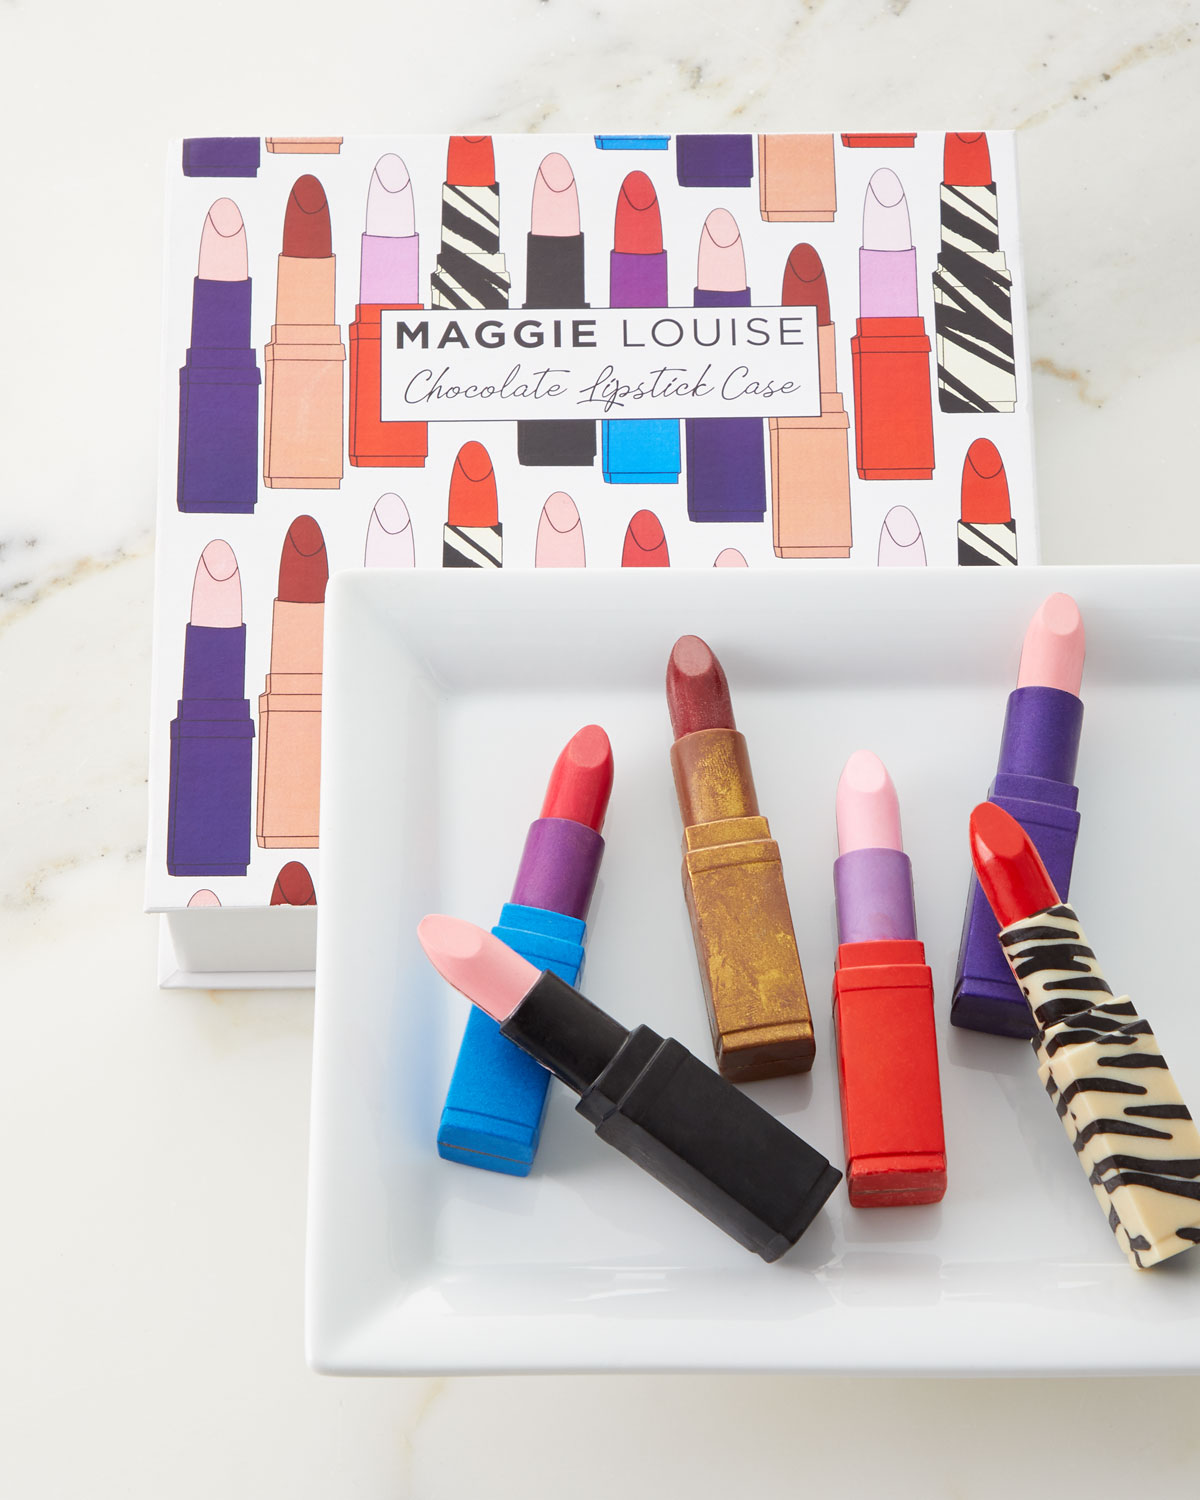 Maggie Louise Chocolate Lipstick Case